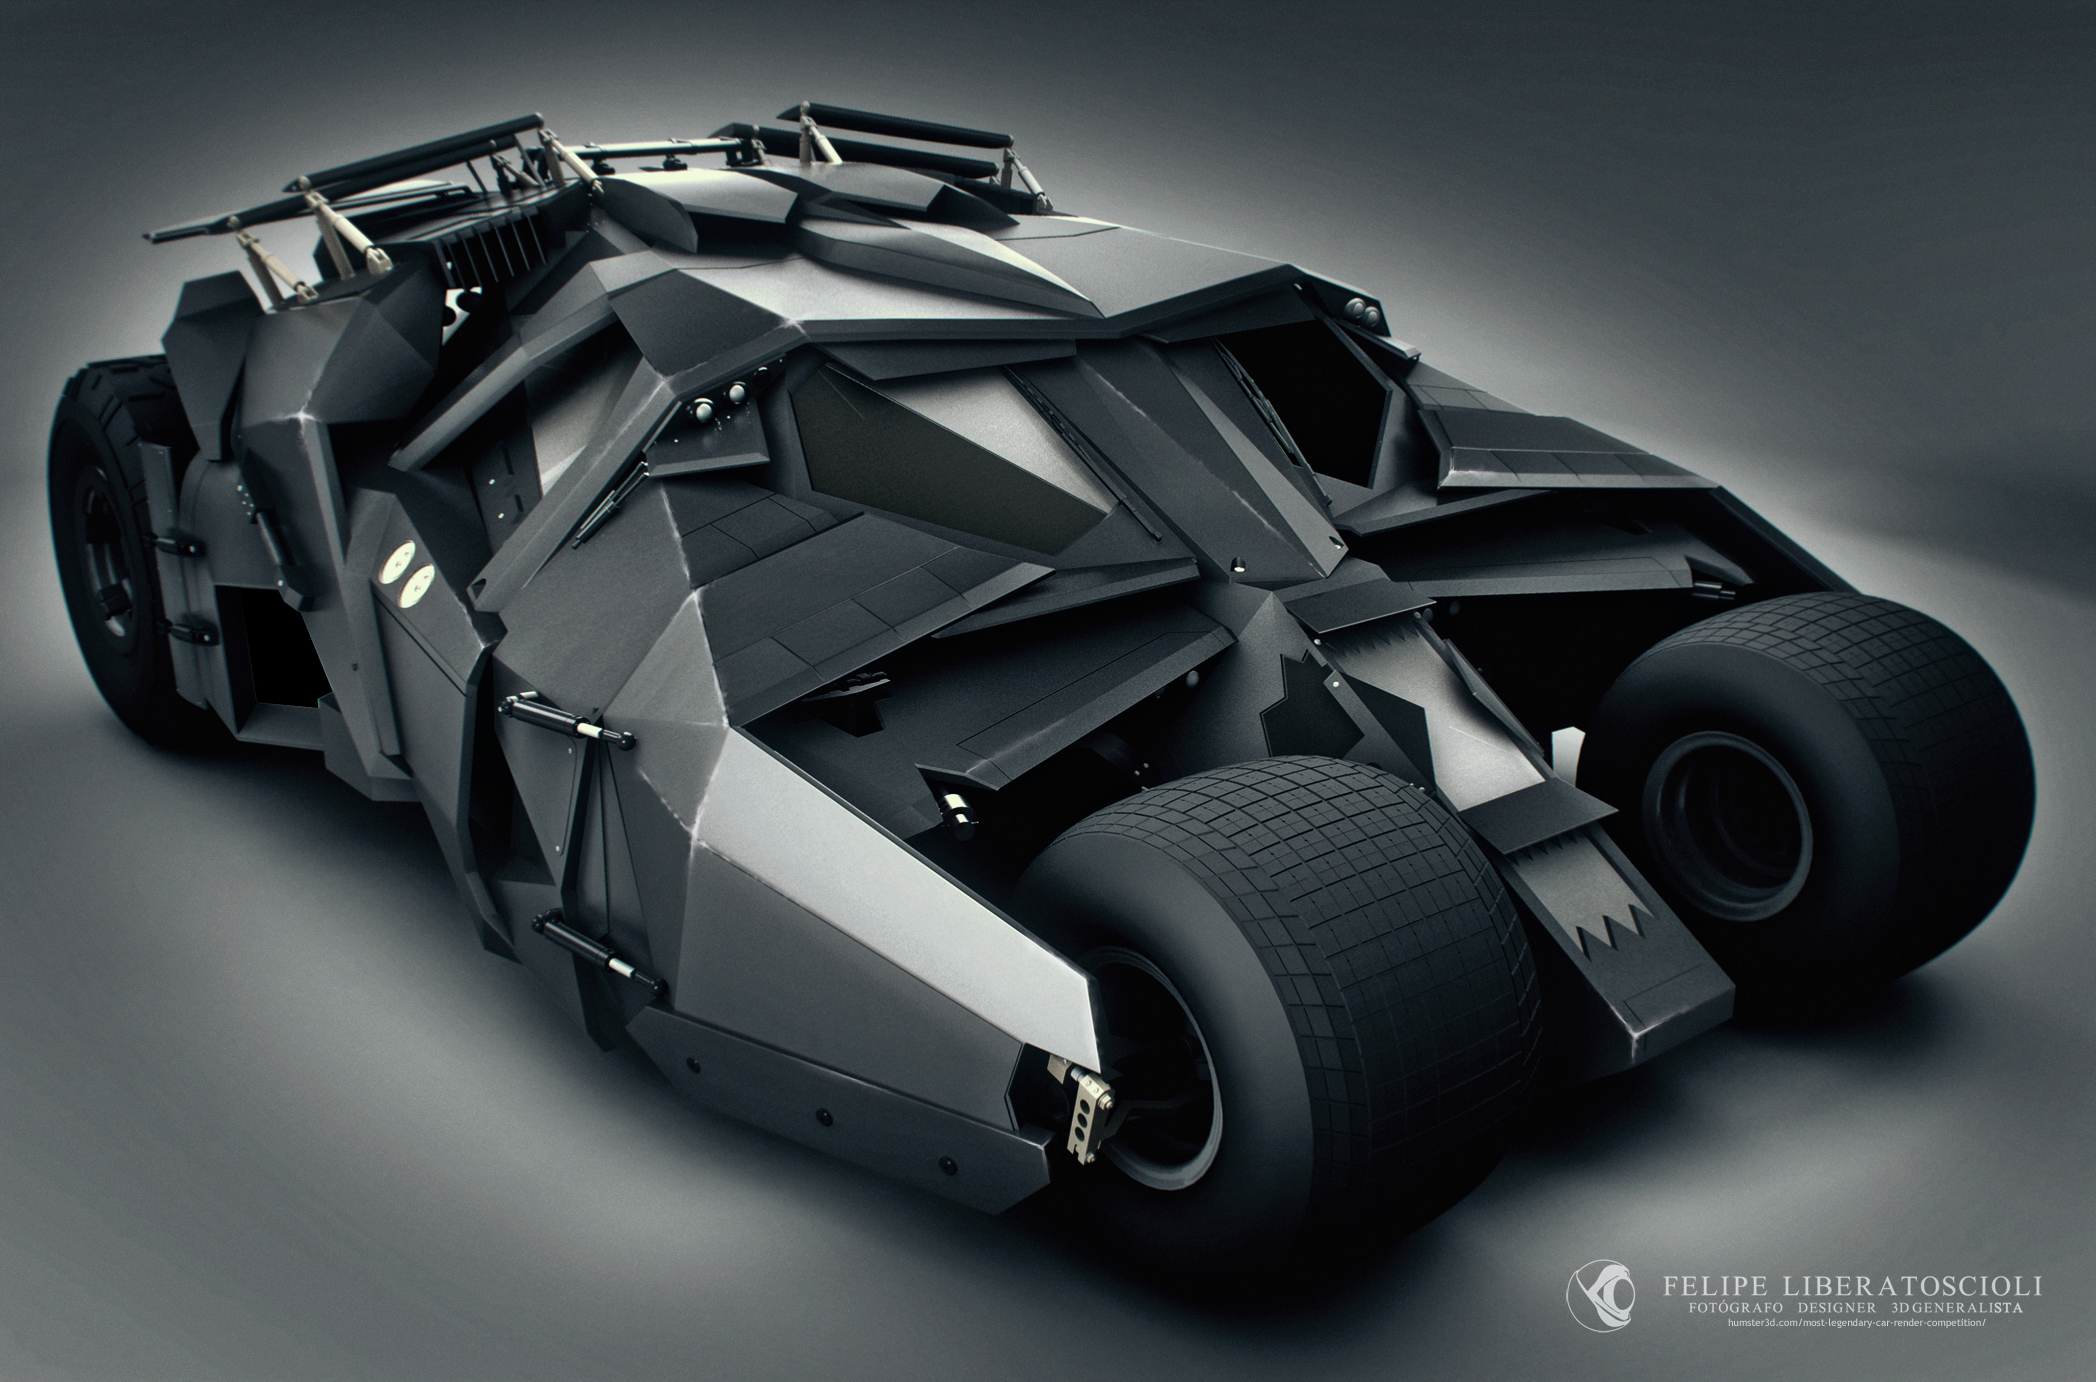 The Tumbler Batmobile - Felipe Liberatoscioli - 3D vehicle competition ...